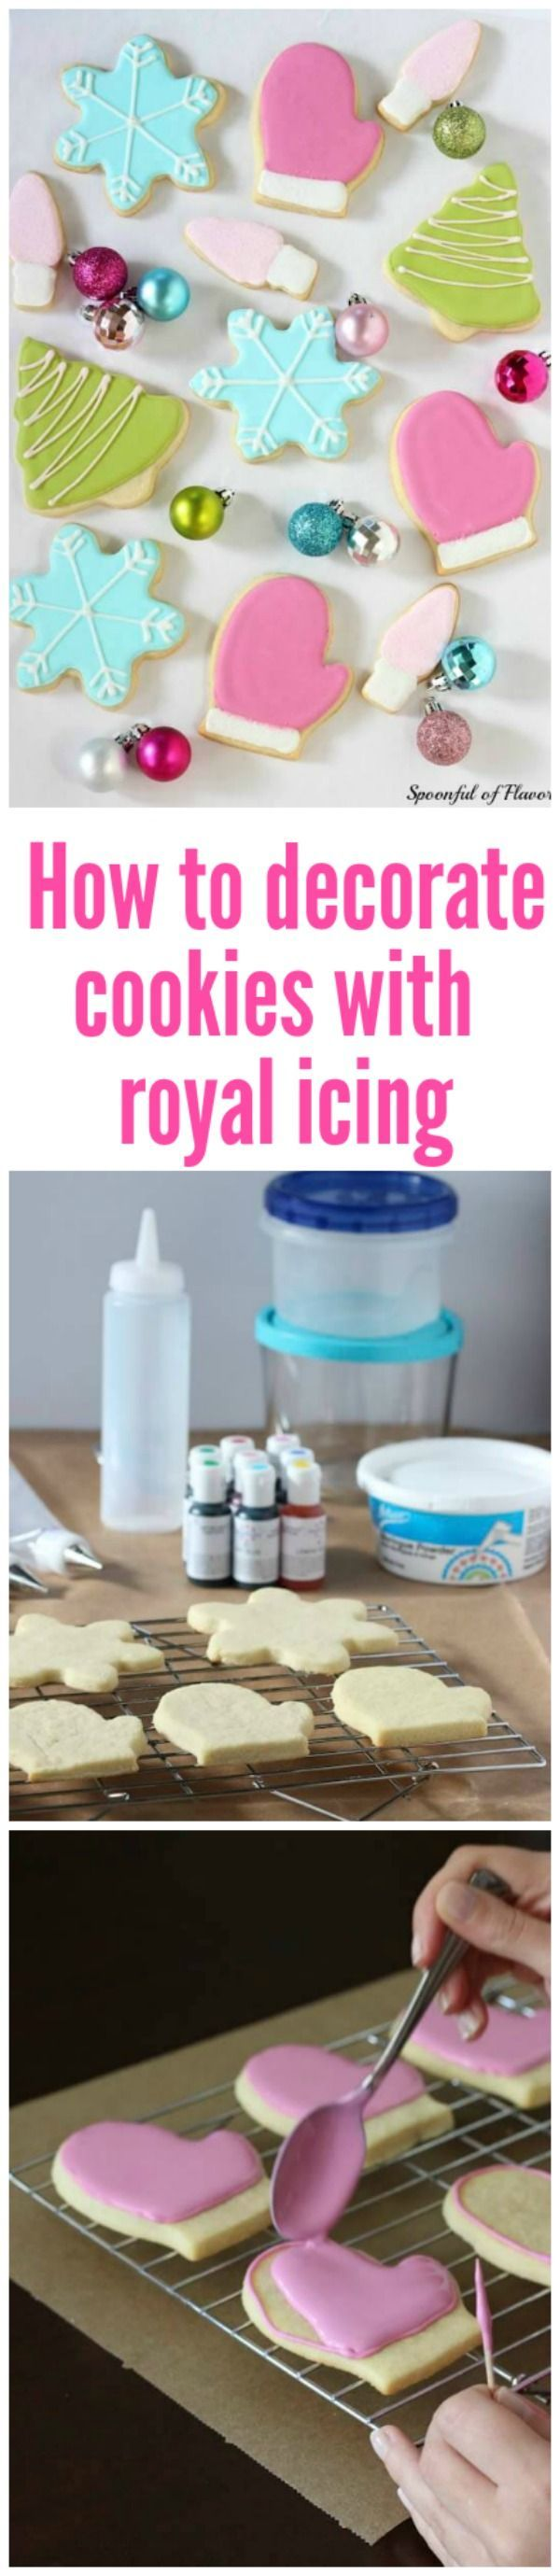 Tips and techniques for how to decorate cookies with royal icing!